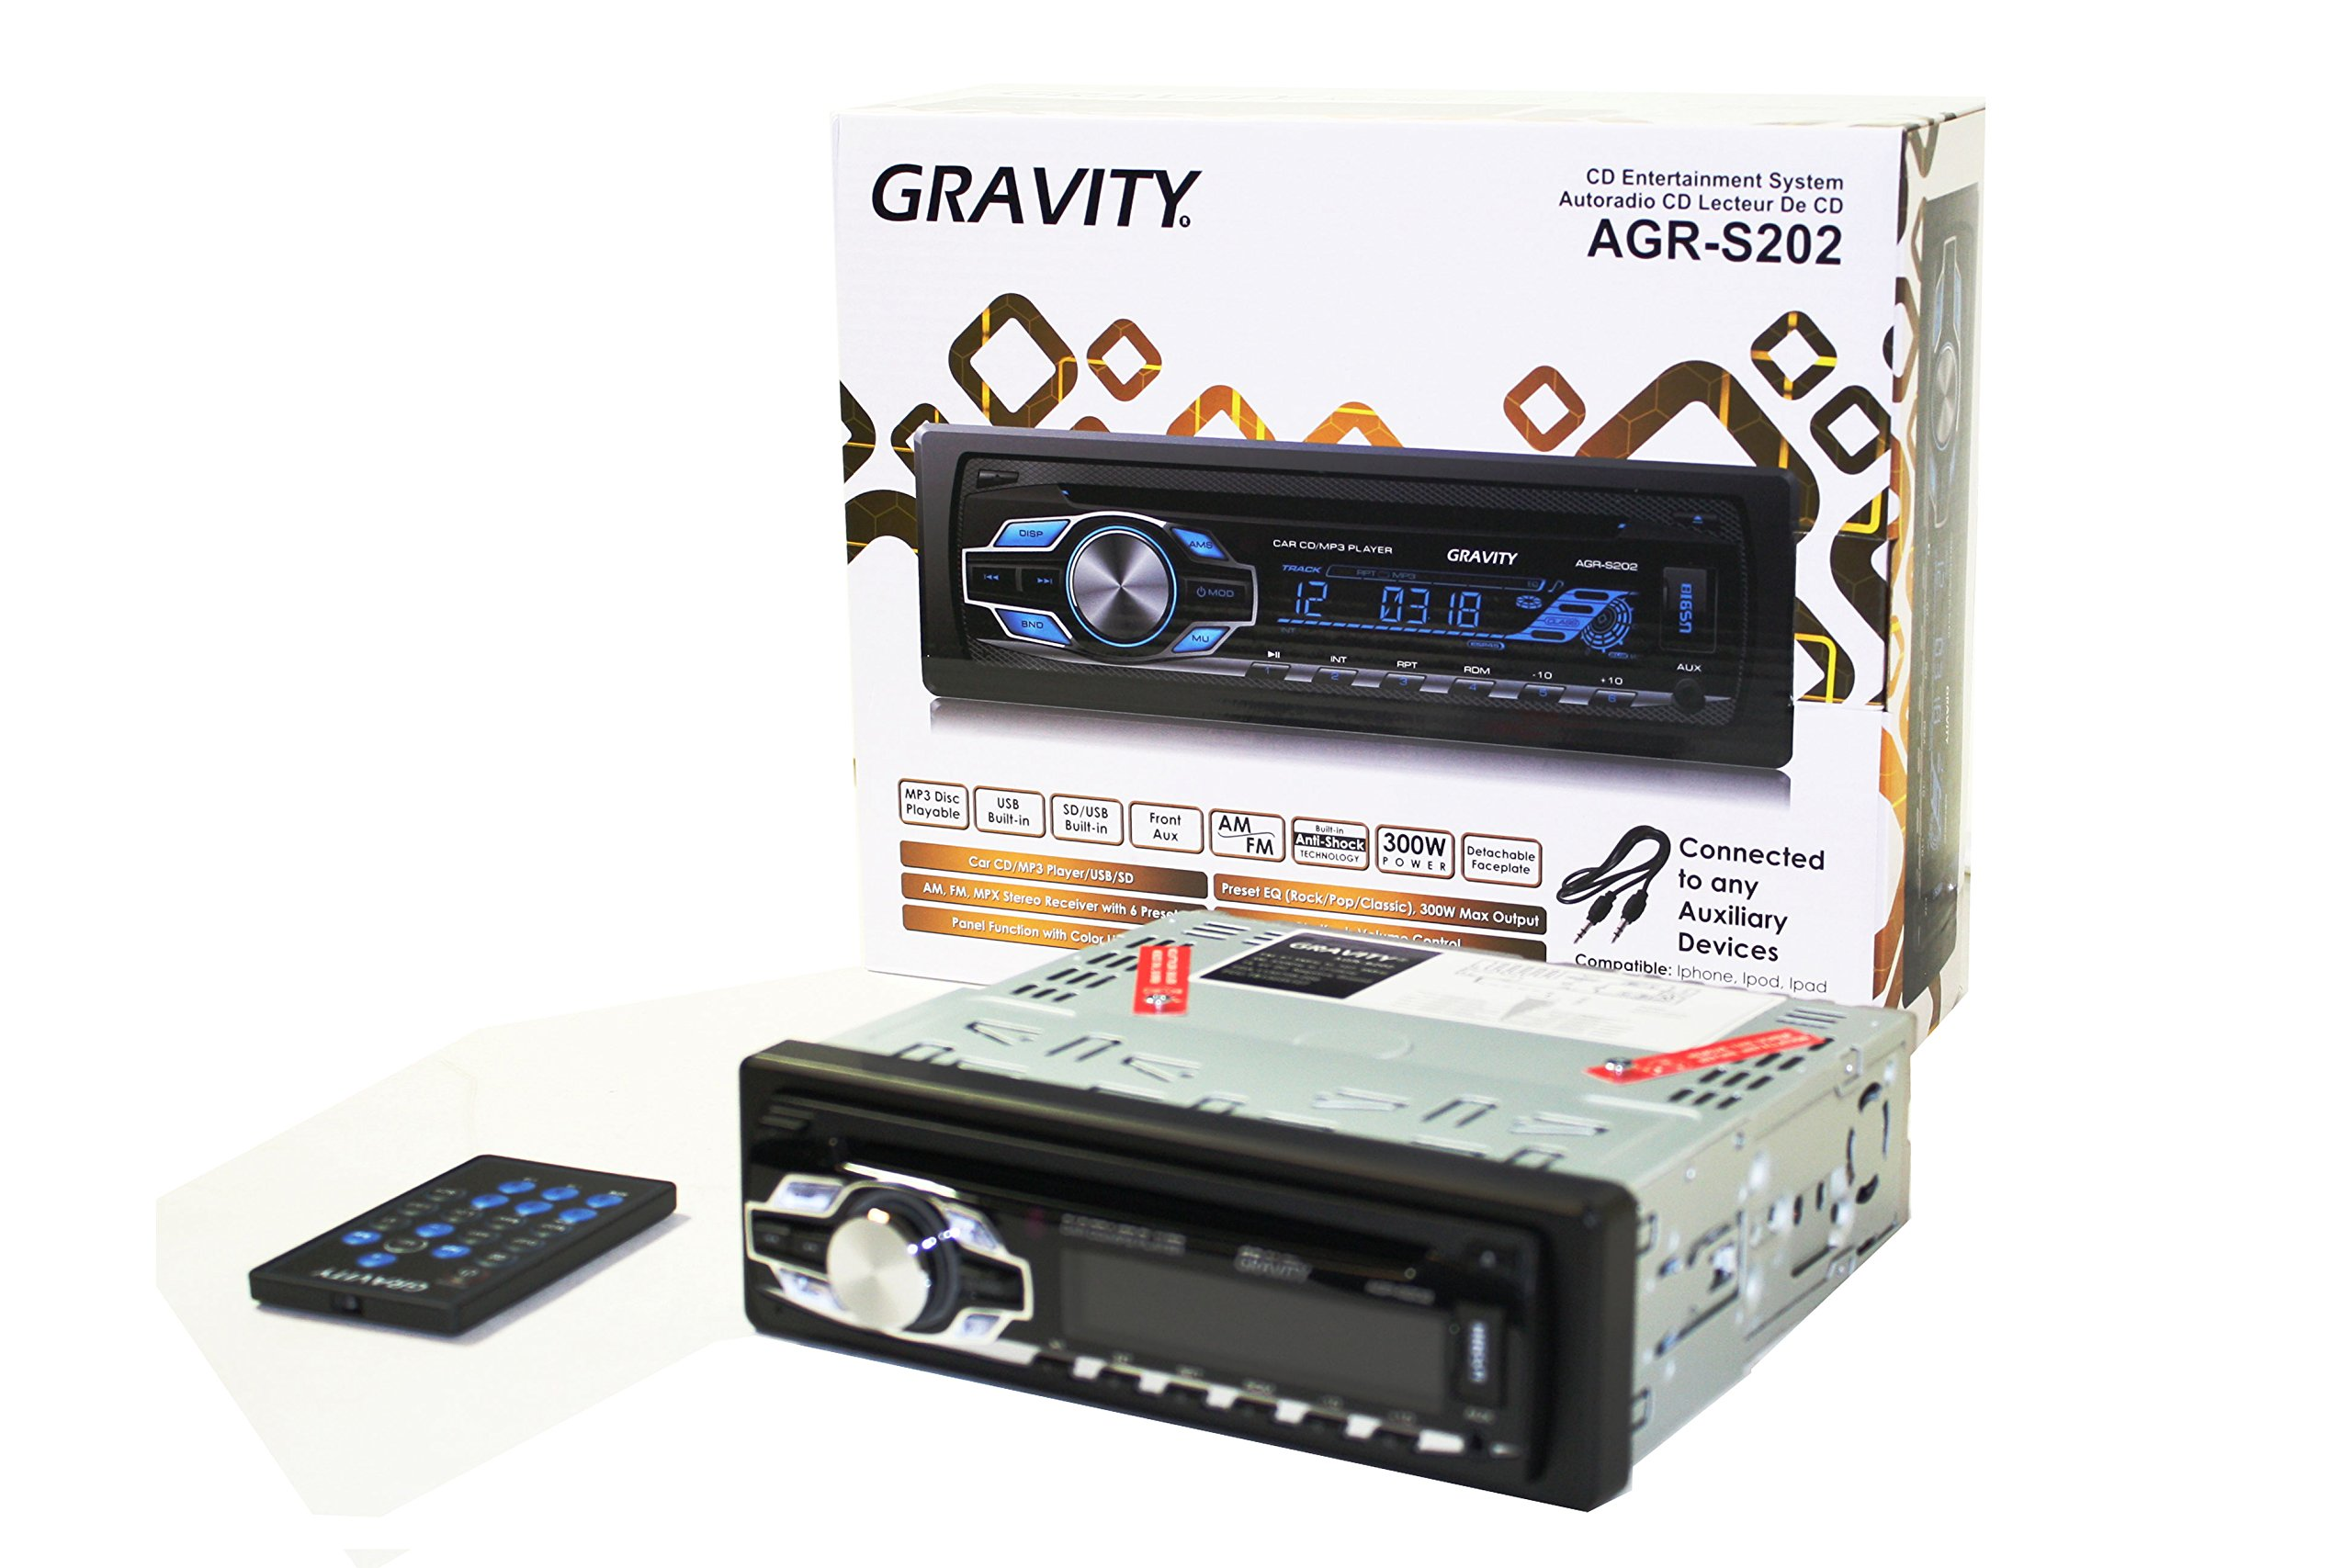 Gravity AGR-S202 Car Entertainment System CD-Receiver Built-in SD/USB/Front Aux Mp3 Disc Playable